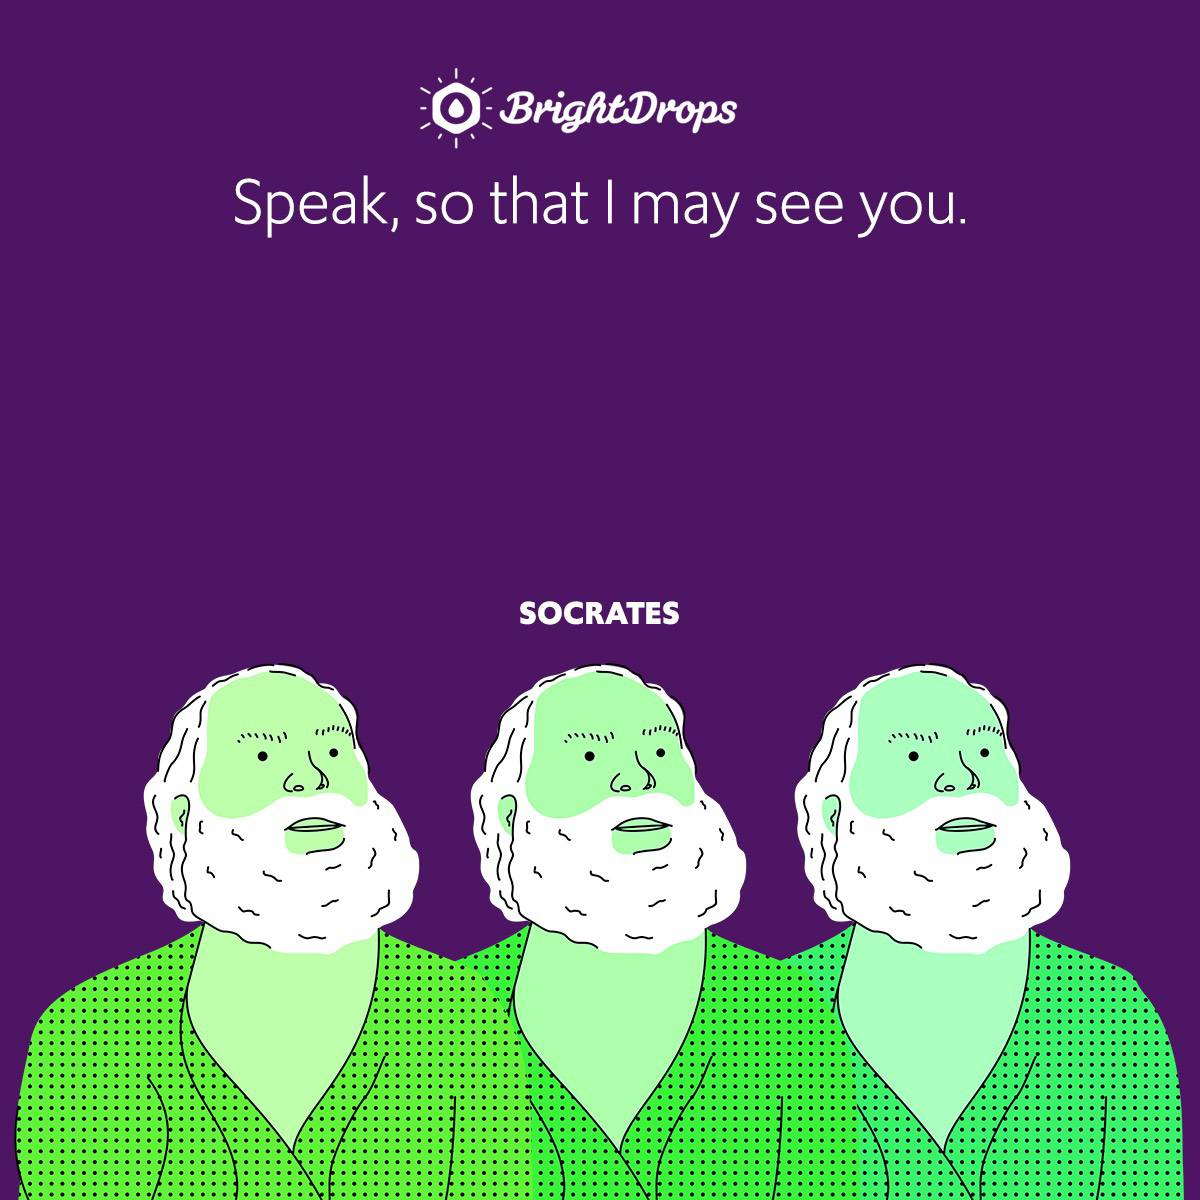 Speak, so that I may see you.